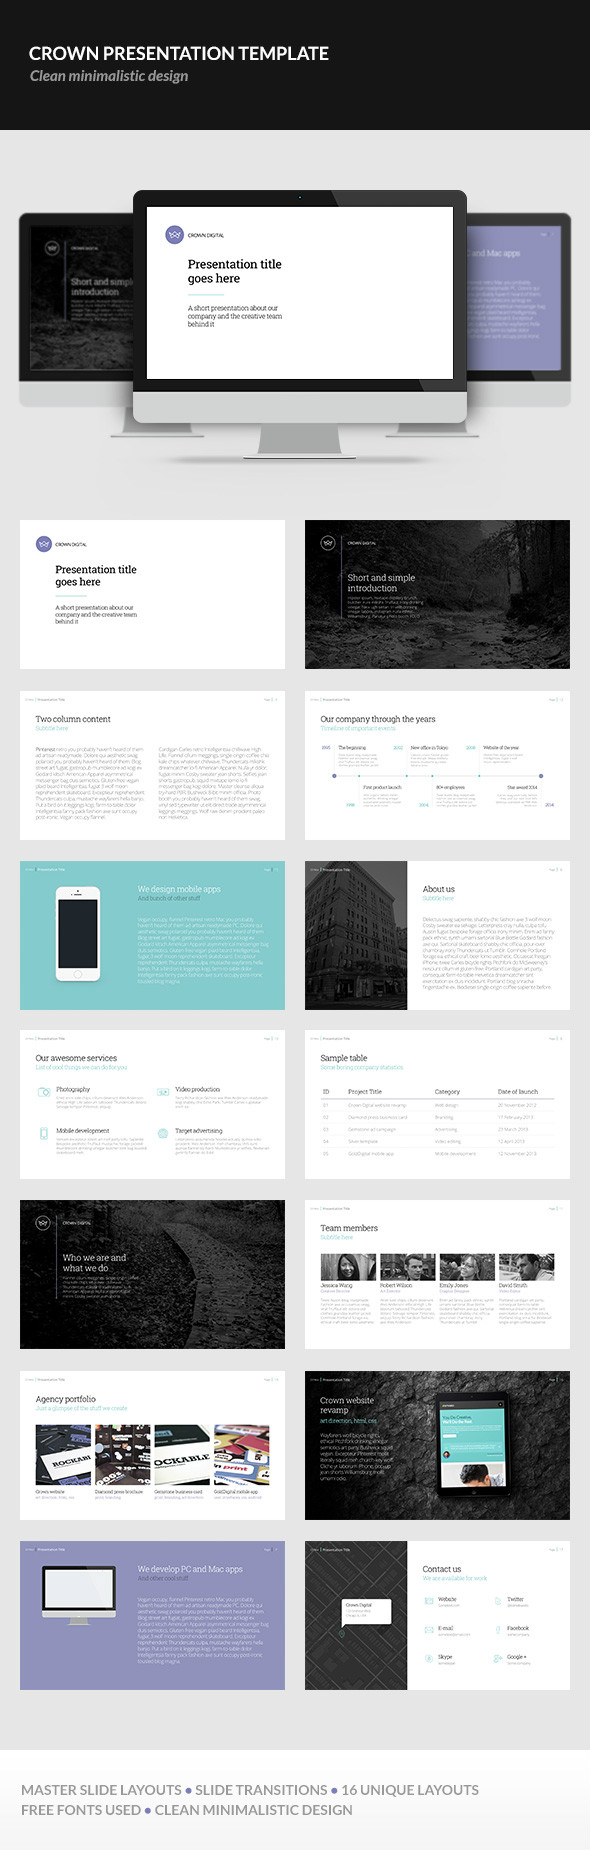 Crown Presentation Template by erigongraphics